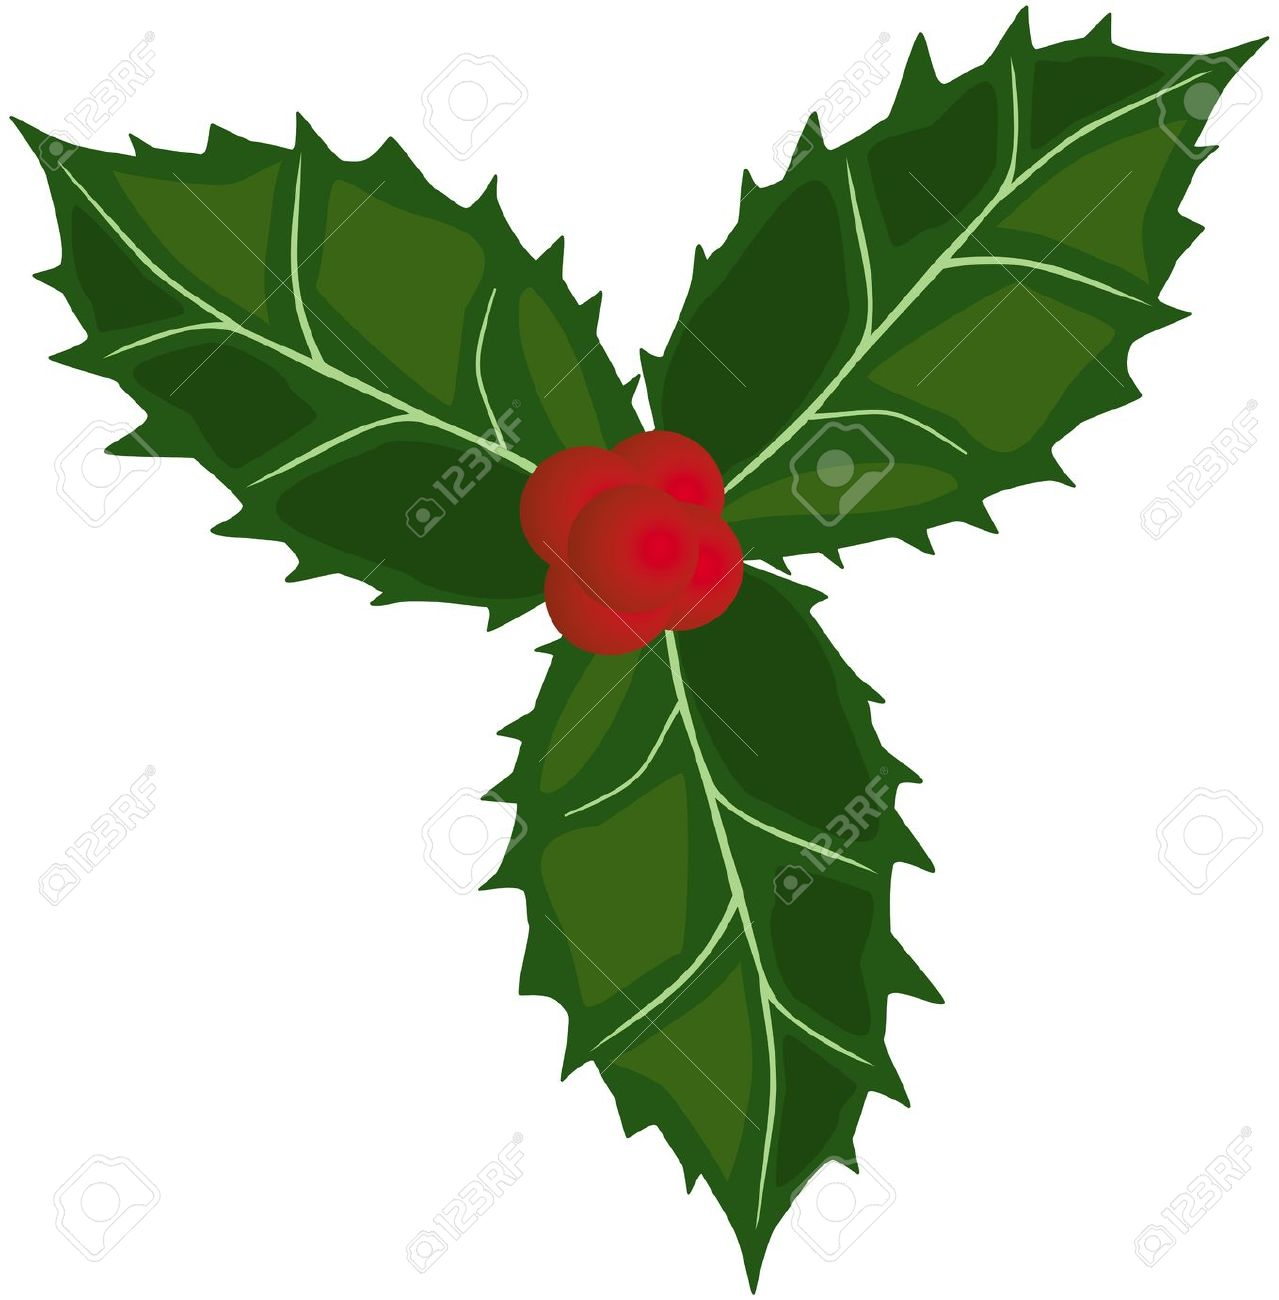 Holly Green Leaves And Red Berries Royalty Free Cliparts, Vectors.